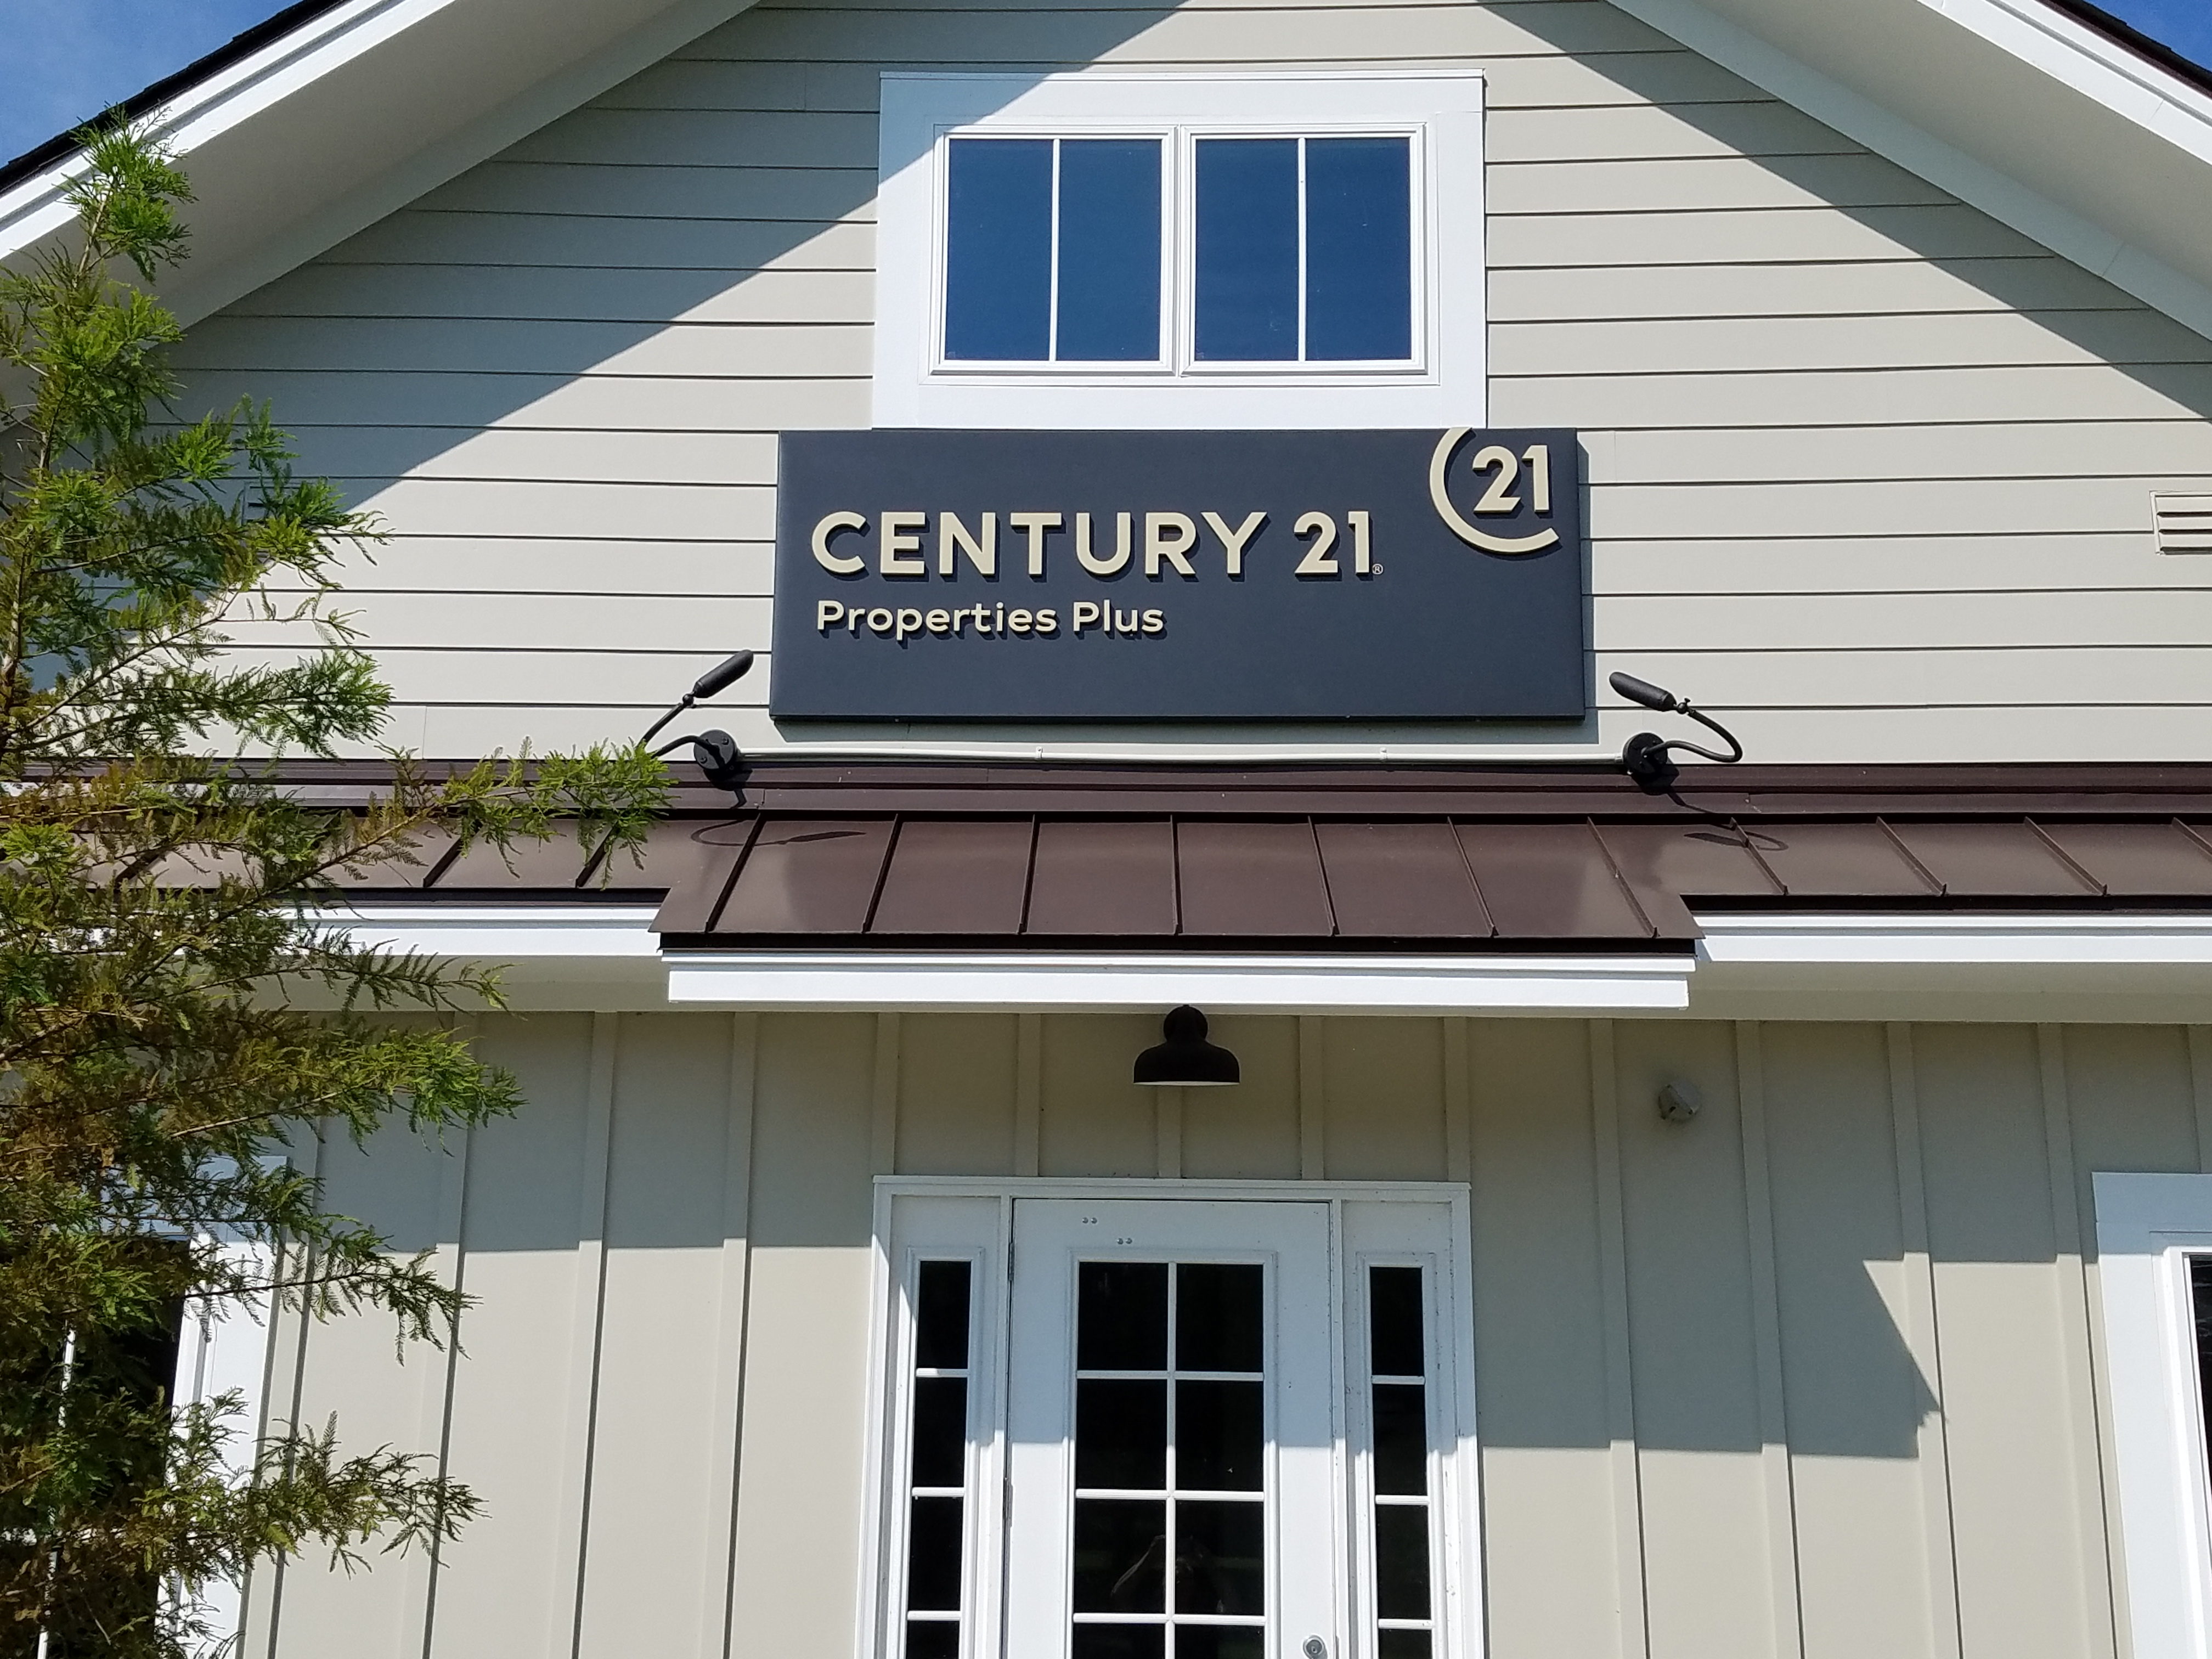 Main Office Building Sign for Century 21 Properties Plus